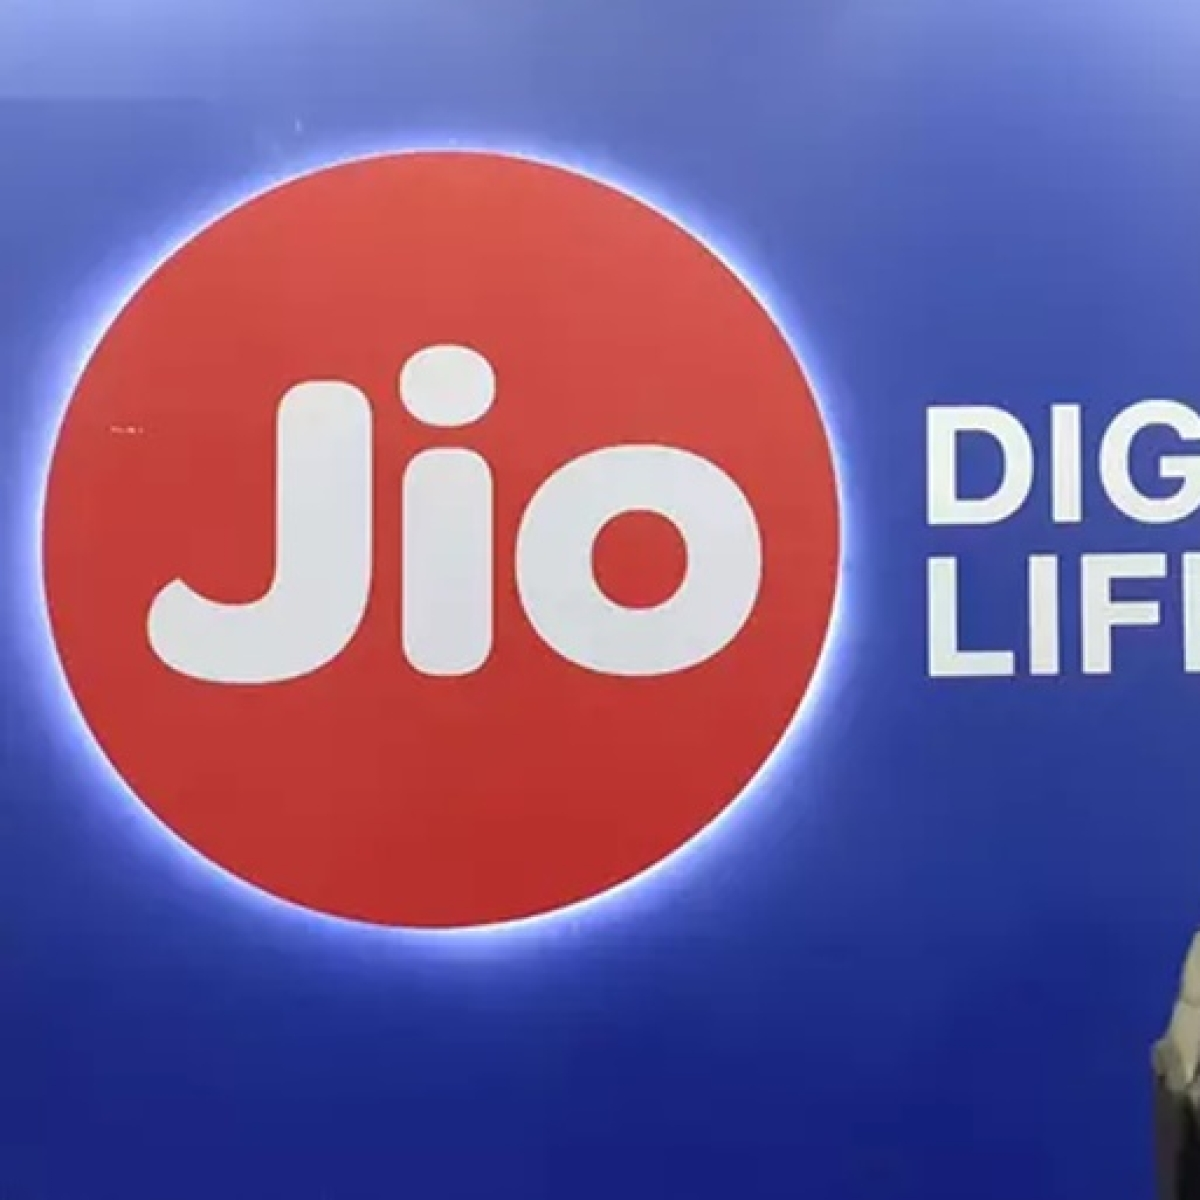 Abu Dhabi's Mubadala to buy 1.85% stake in Mukesh Ambani's Reliance Jio Platforms for Rs 9,093.6 cr